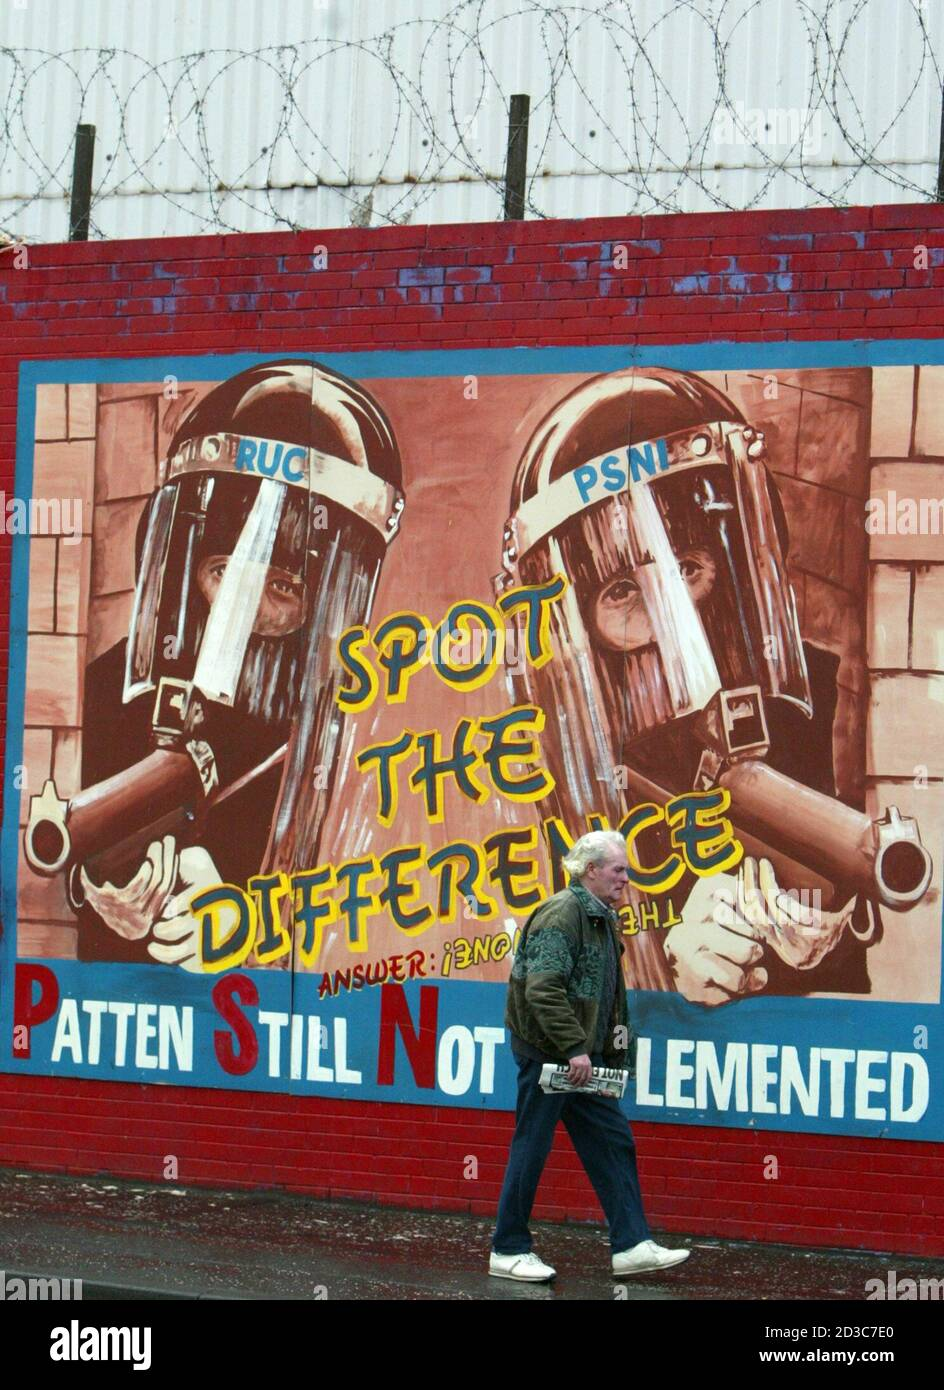 Irish Republican Mural High Resolution Stock Photography And Images Alamy